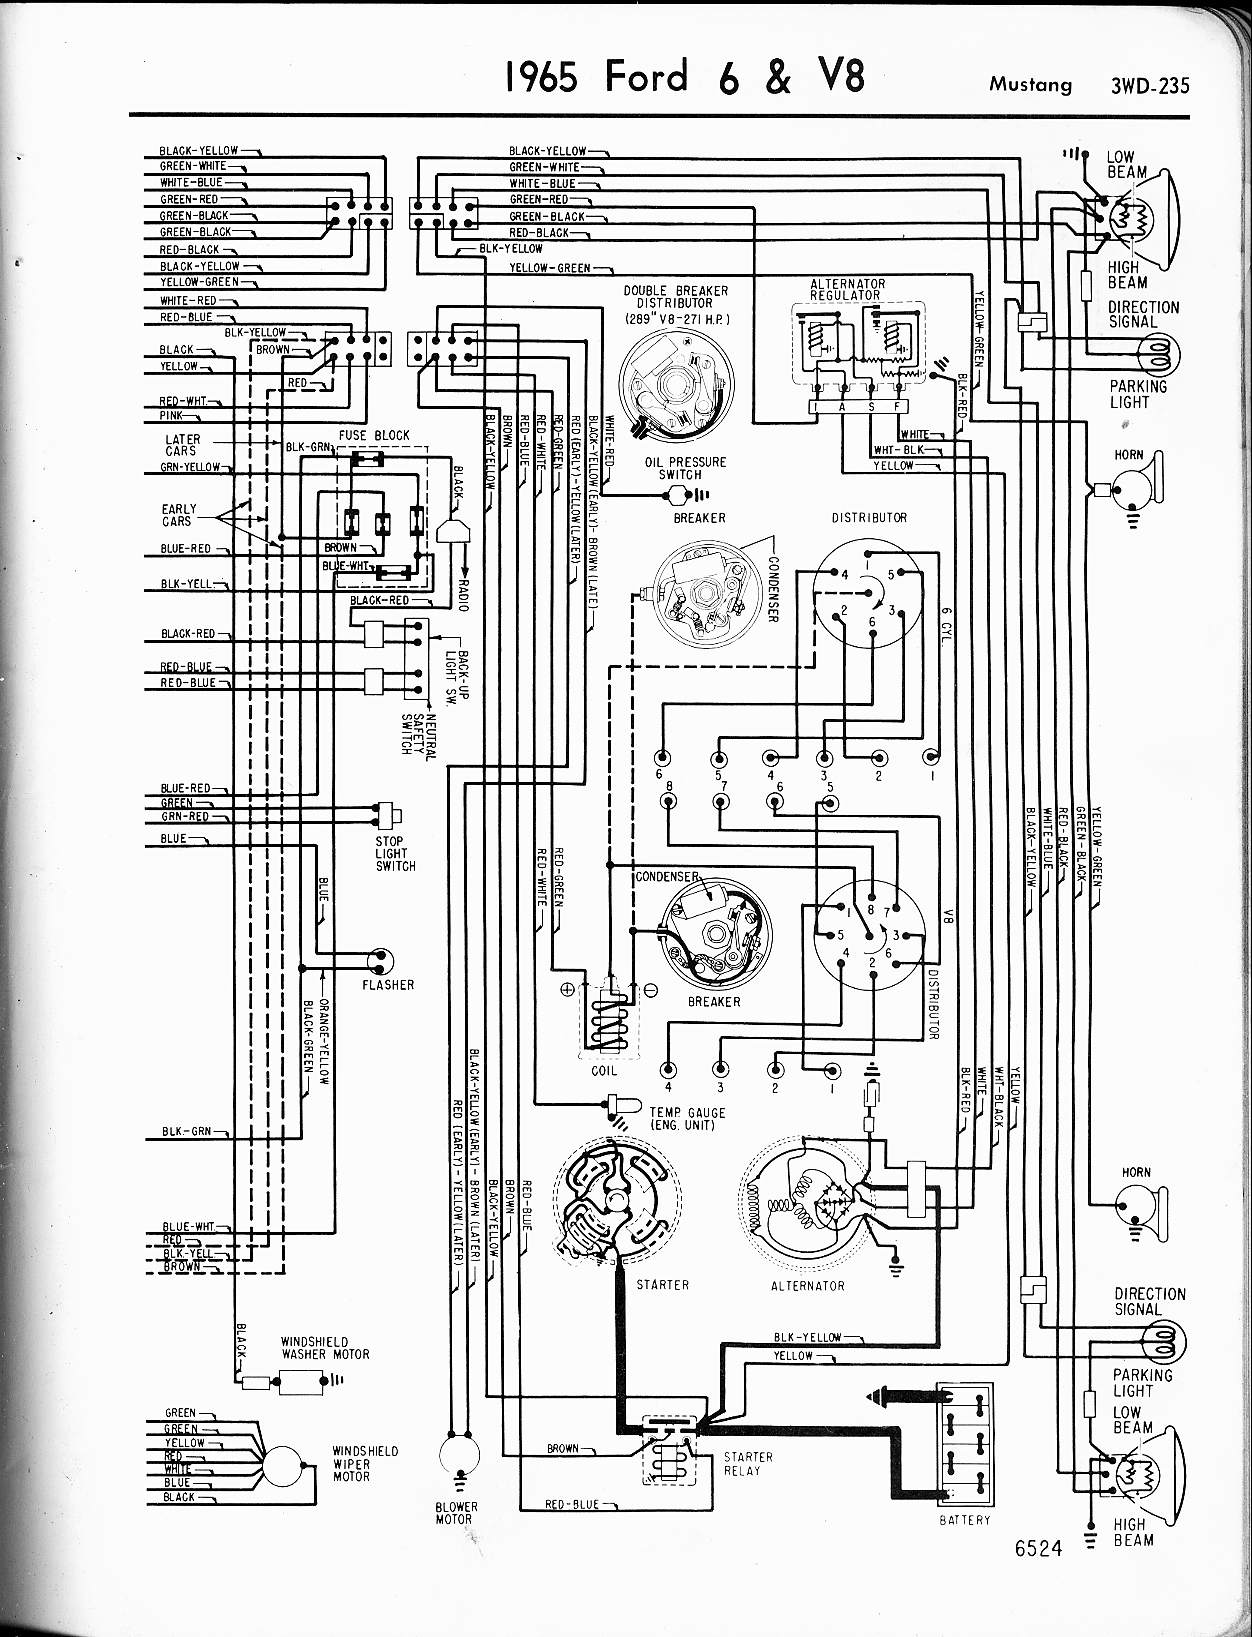 605041 Alternator Wiring on 1969 ford fuse box diagram